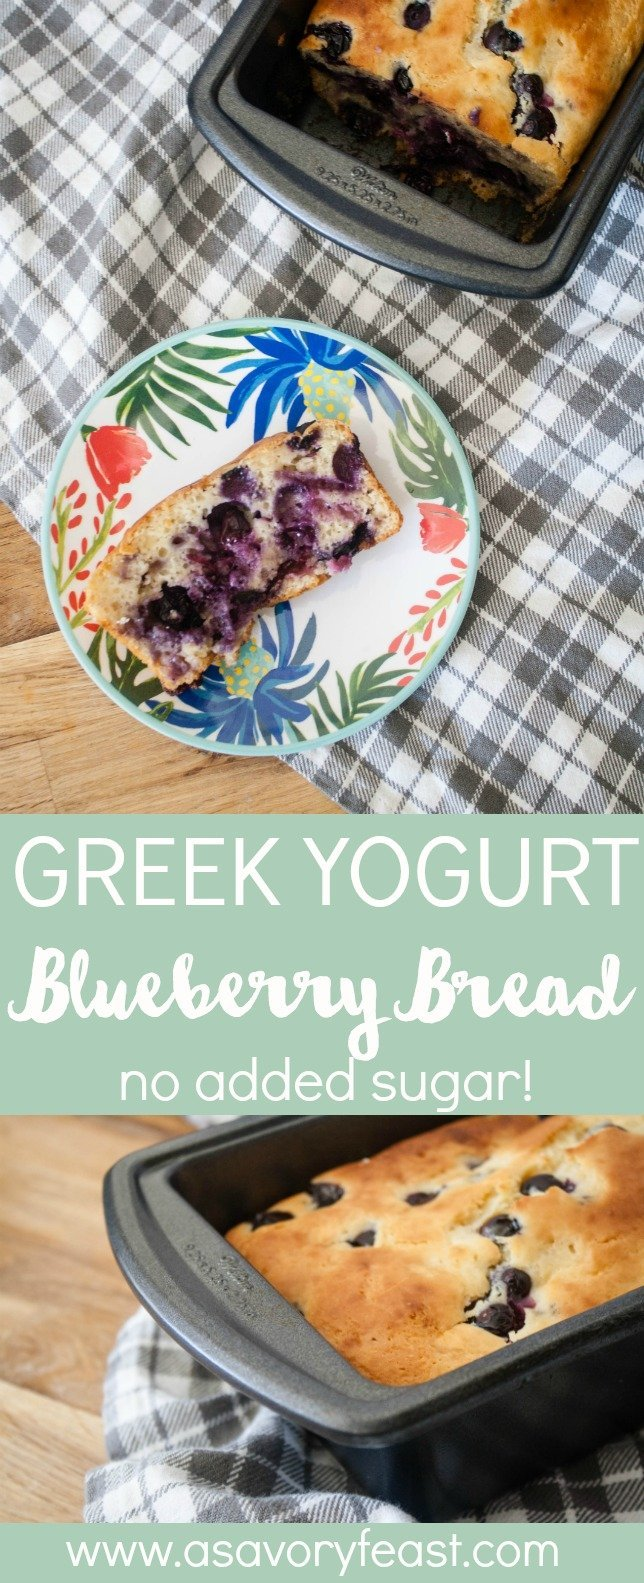 Fresh blueberries and honey are all the sweetness you need in this healthier Greek Yogurt Blueberry Bread! The greek yogurt gives this bread such a moist, fluffy texture. Make this bread today and have breakfast for the rest of the week!